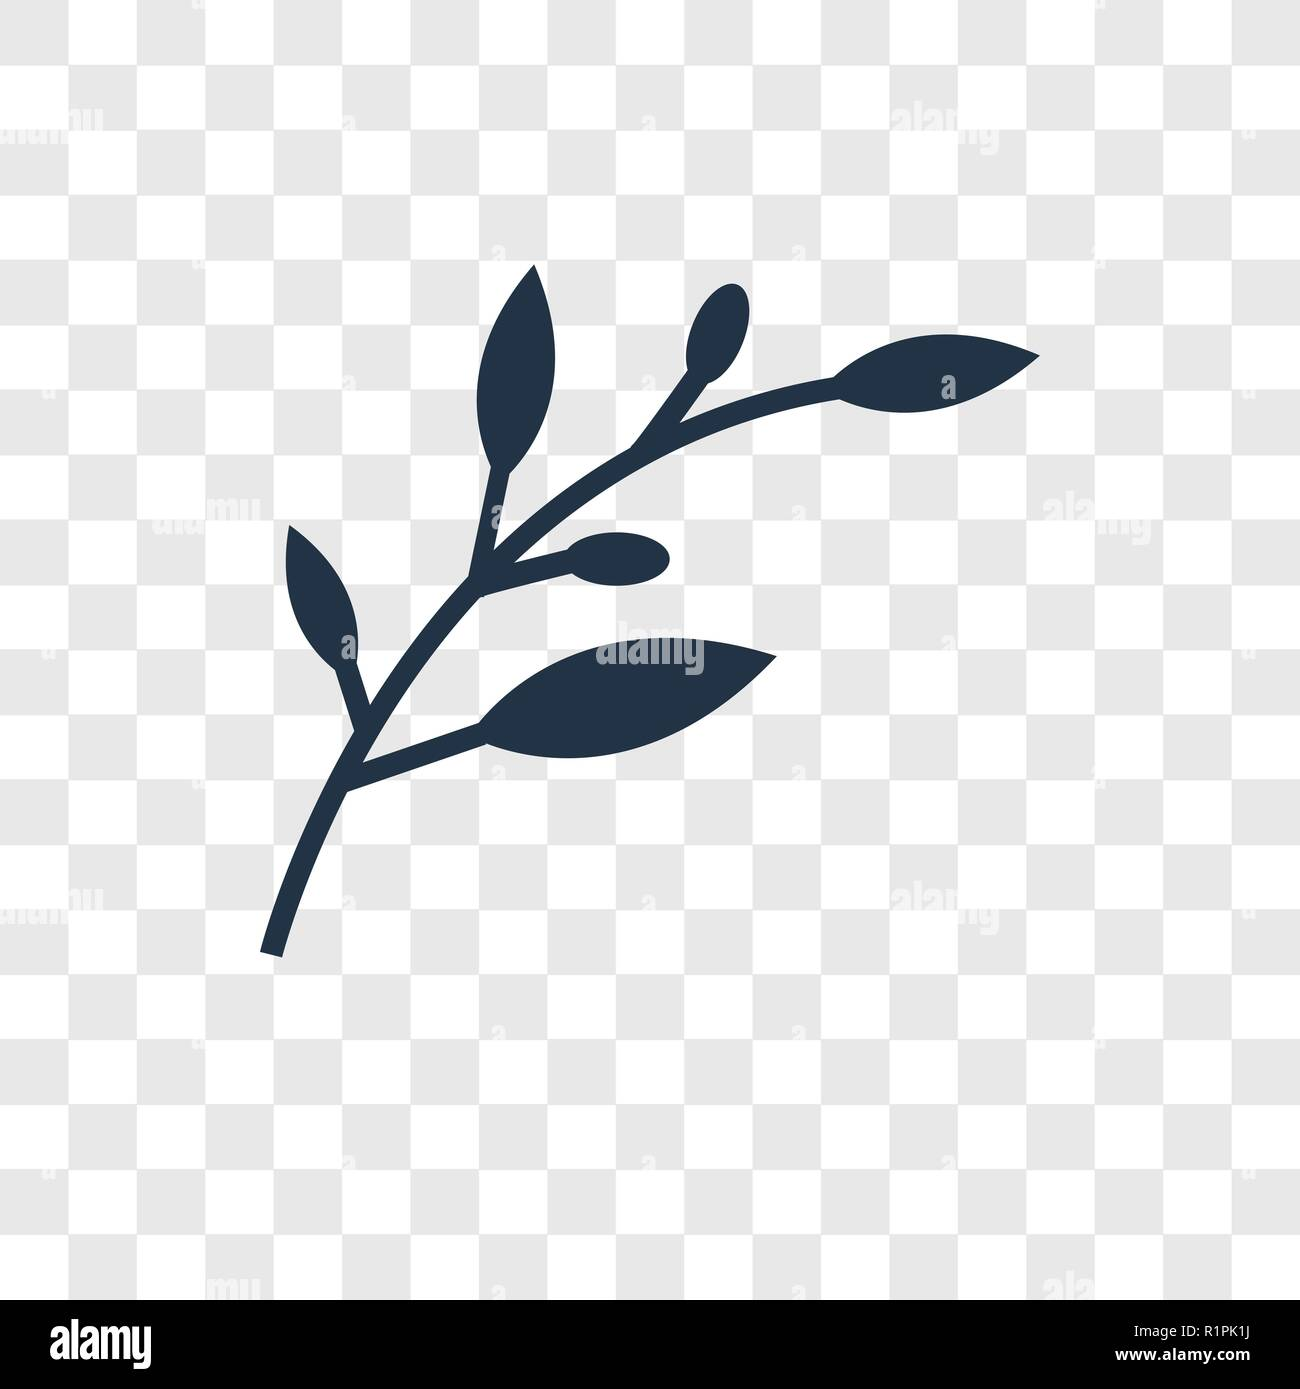 Olive Branch vector icon isolated on transparent background, Olive Branch transparency logo concept - Stock Image